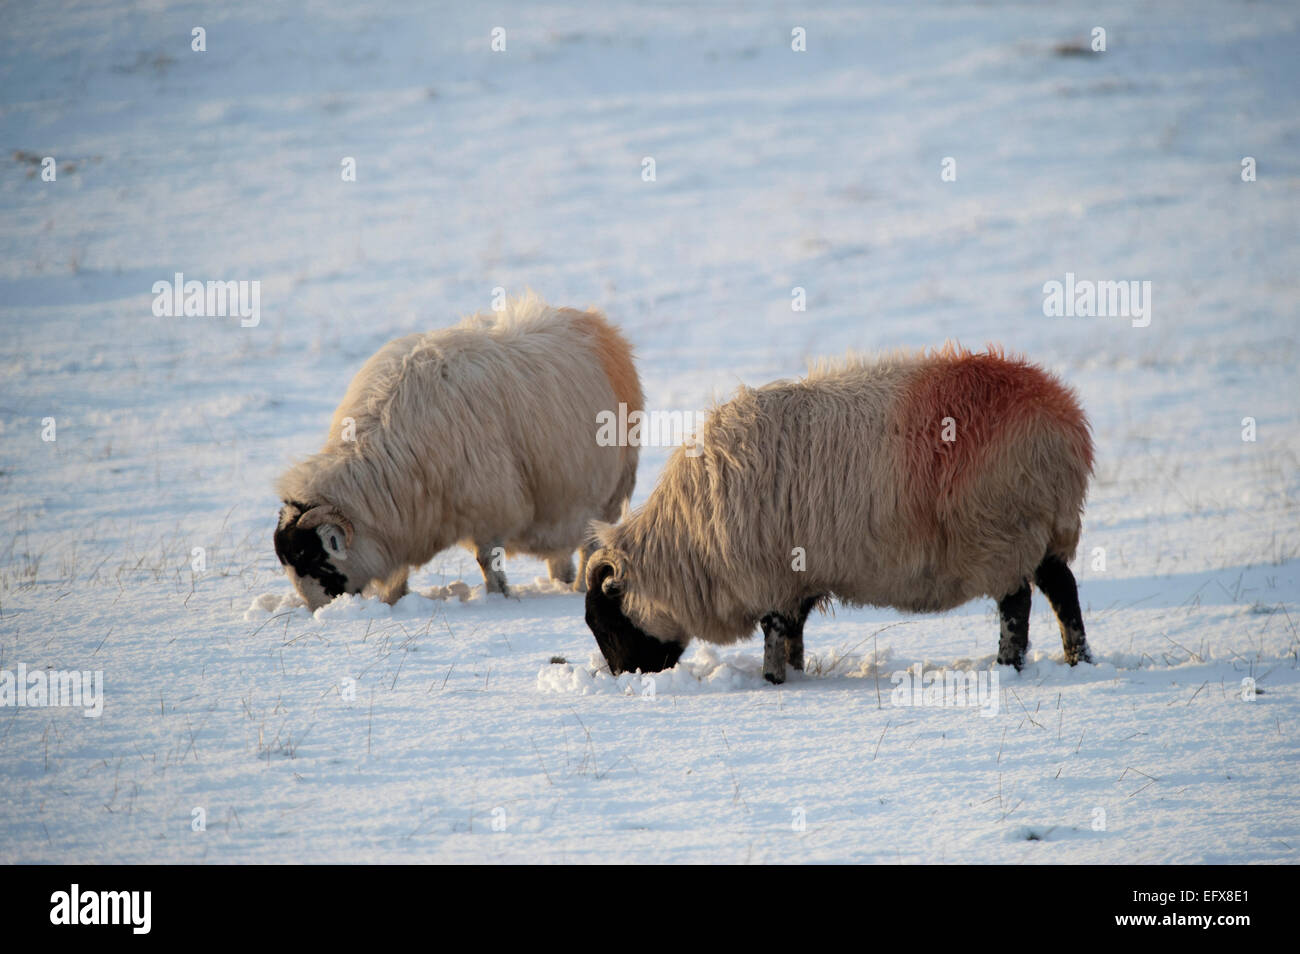 Kendal Rough Fell sheep grazing in the snow. Cumbria, UK. - Stock Image